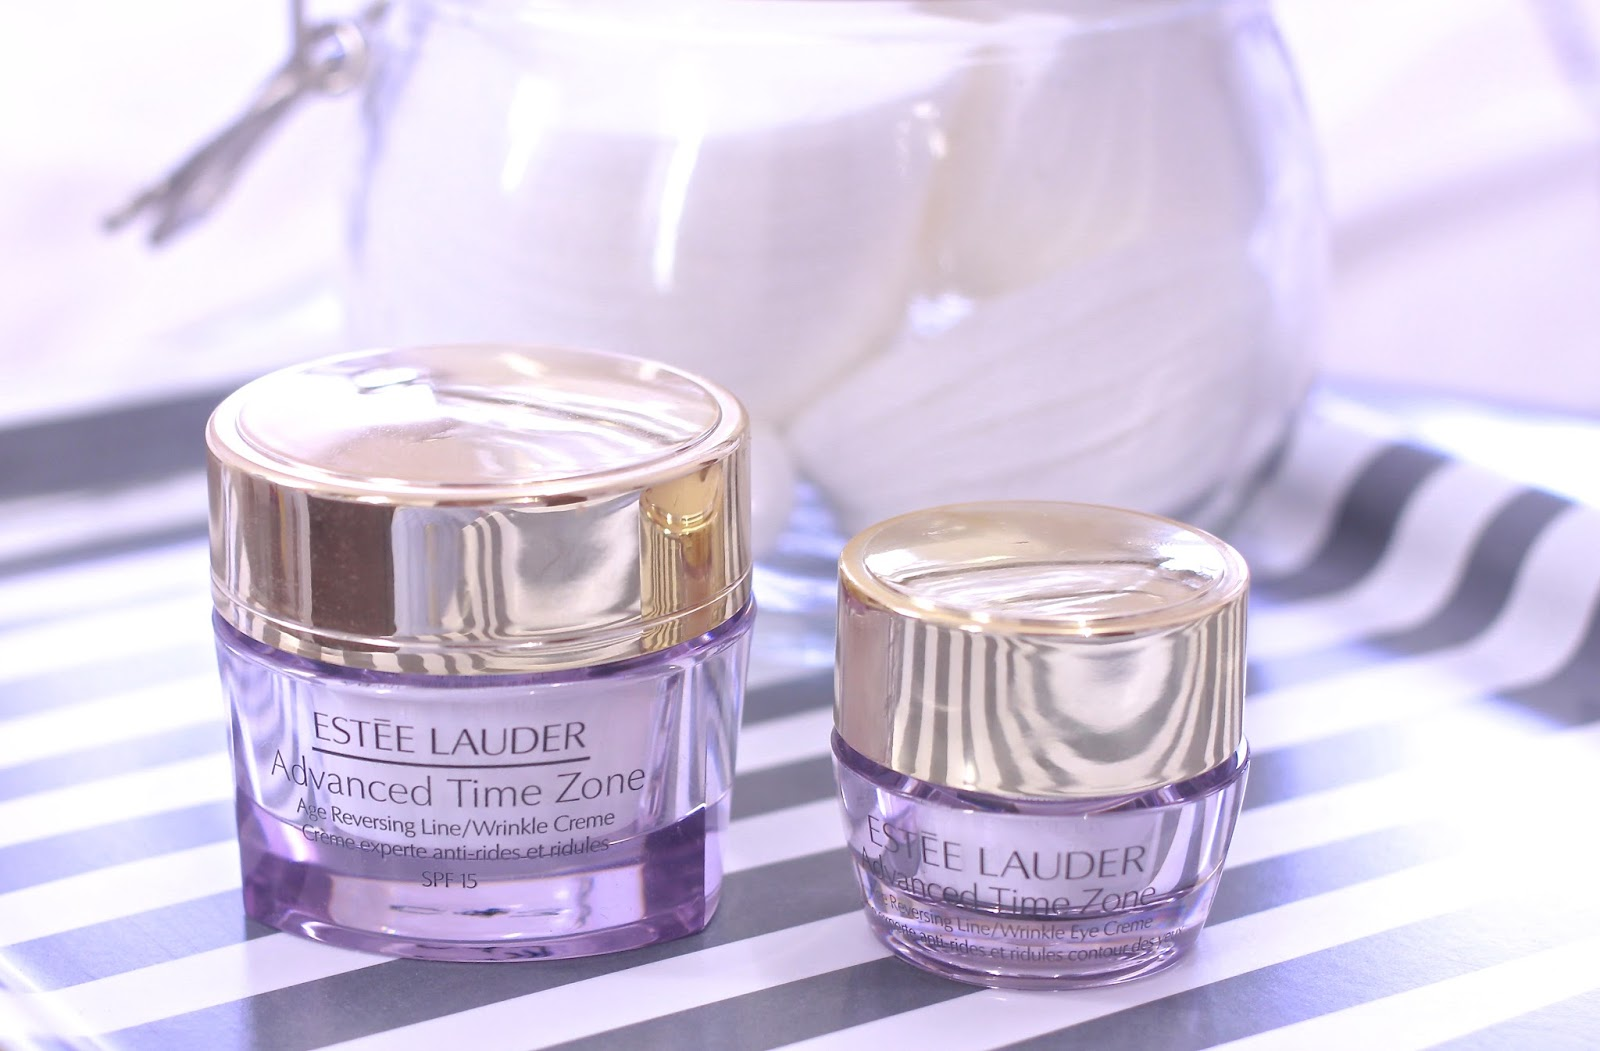 Como funciona o Creme Advanced Time Zone da Estee Lauder?